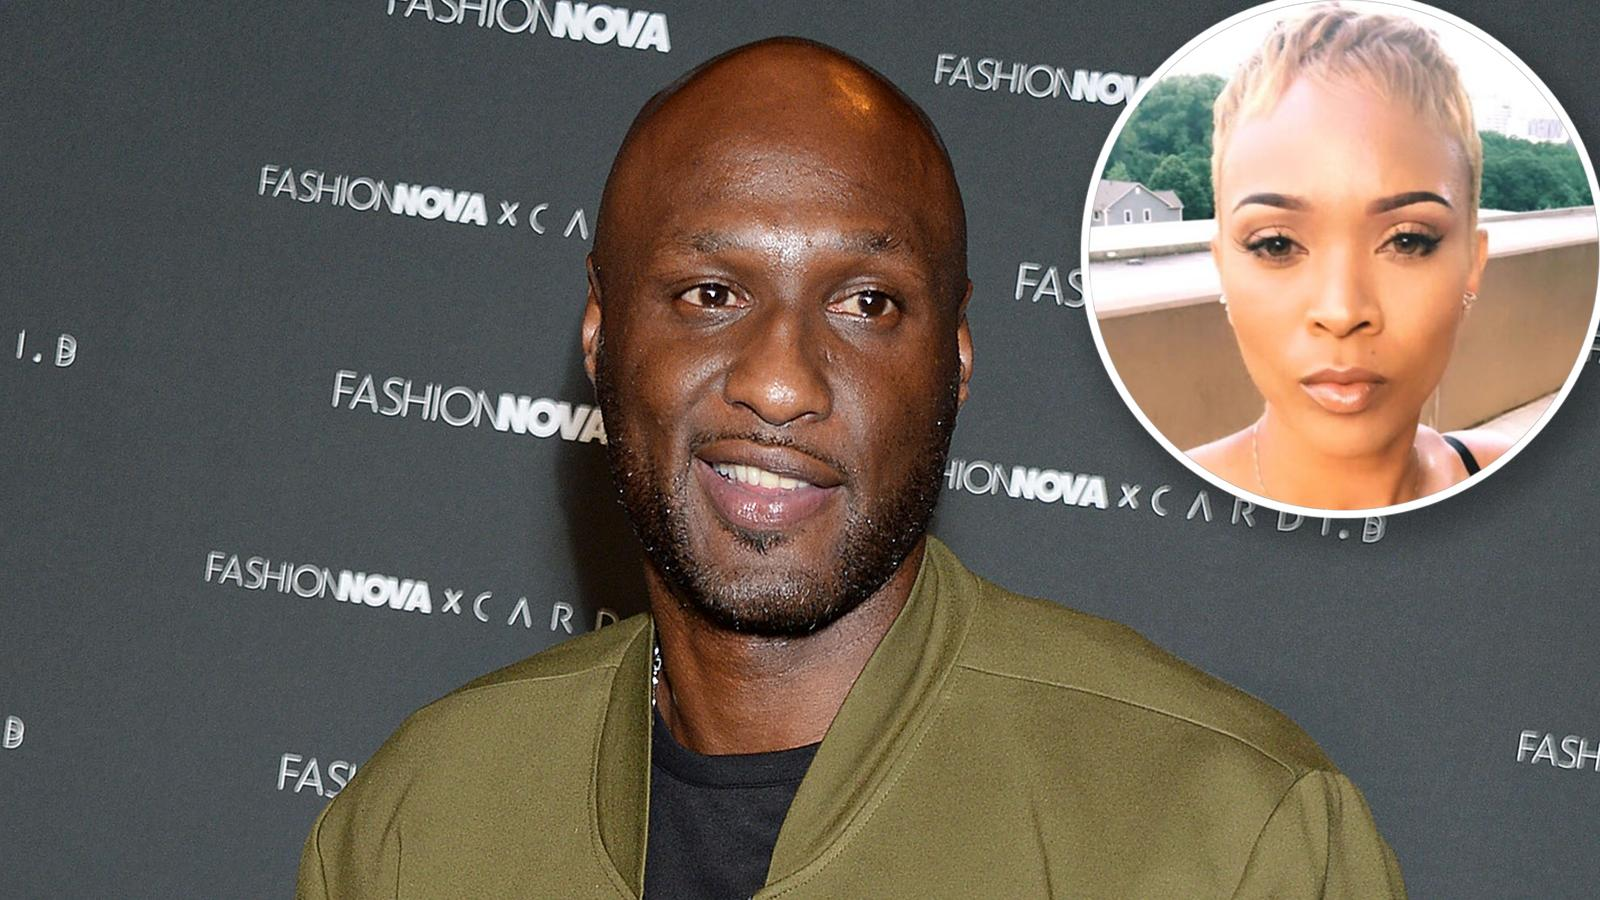 Lamar Odom Reveals He Wants To Have 'Twin Boys' With Girlfriend Sabrina Parr!